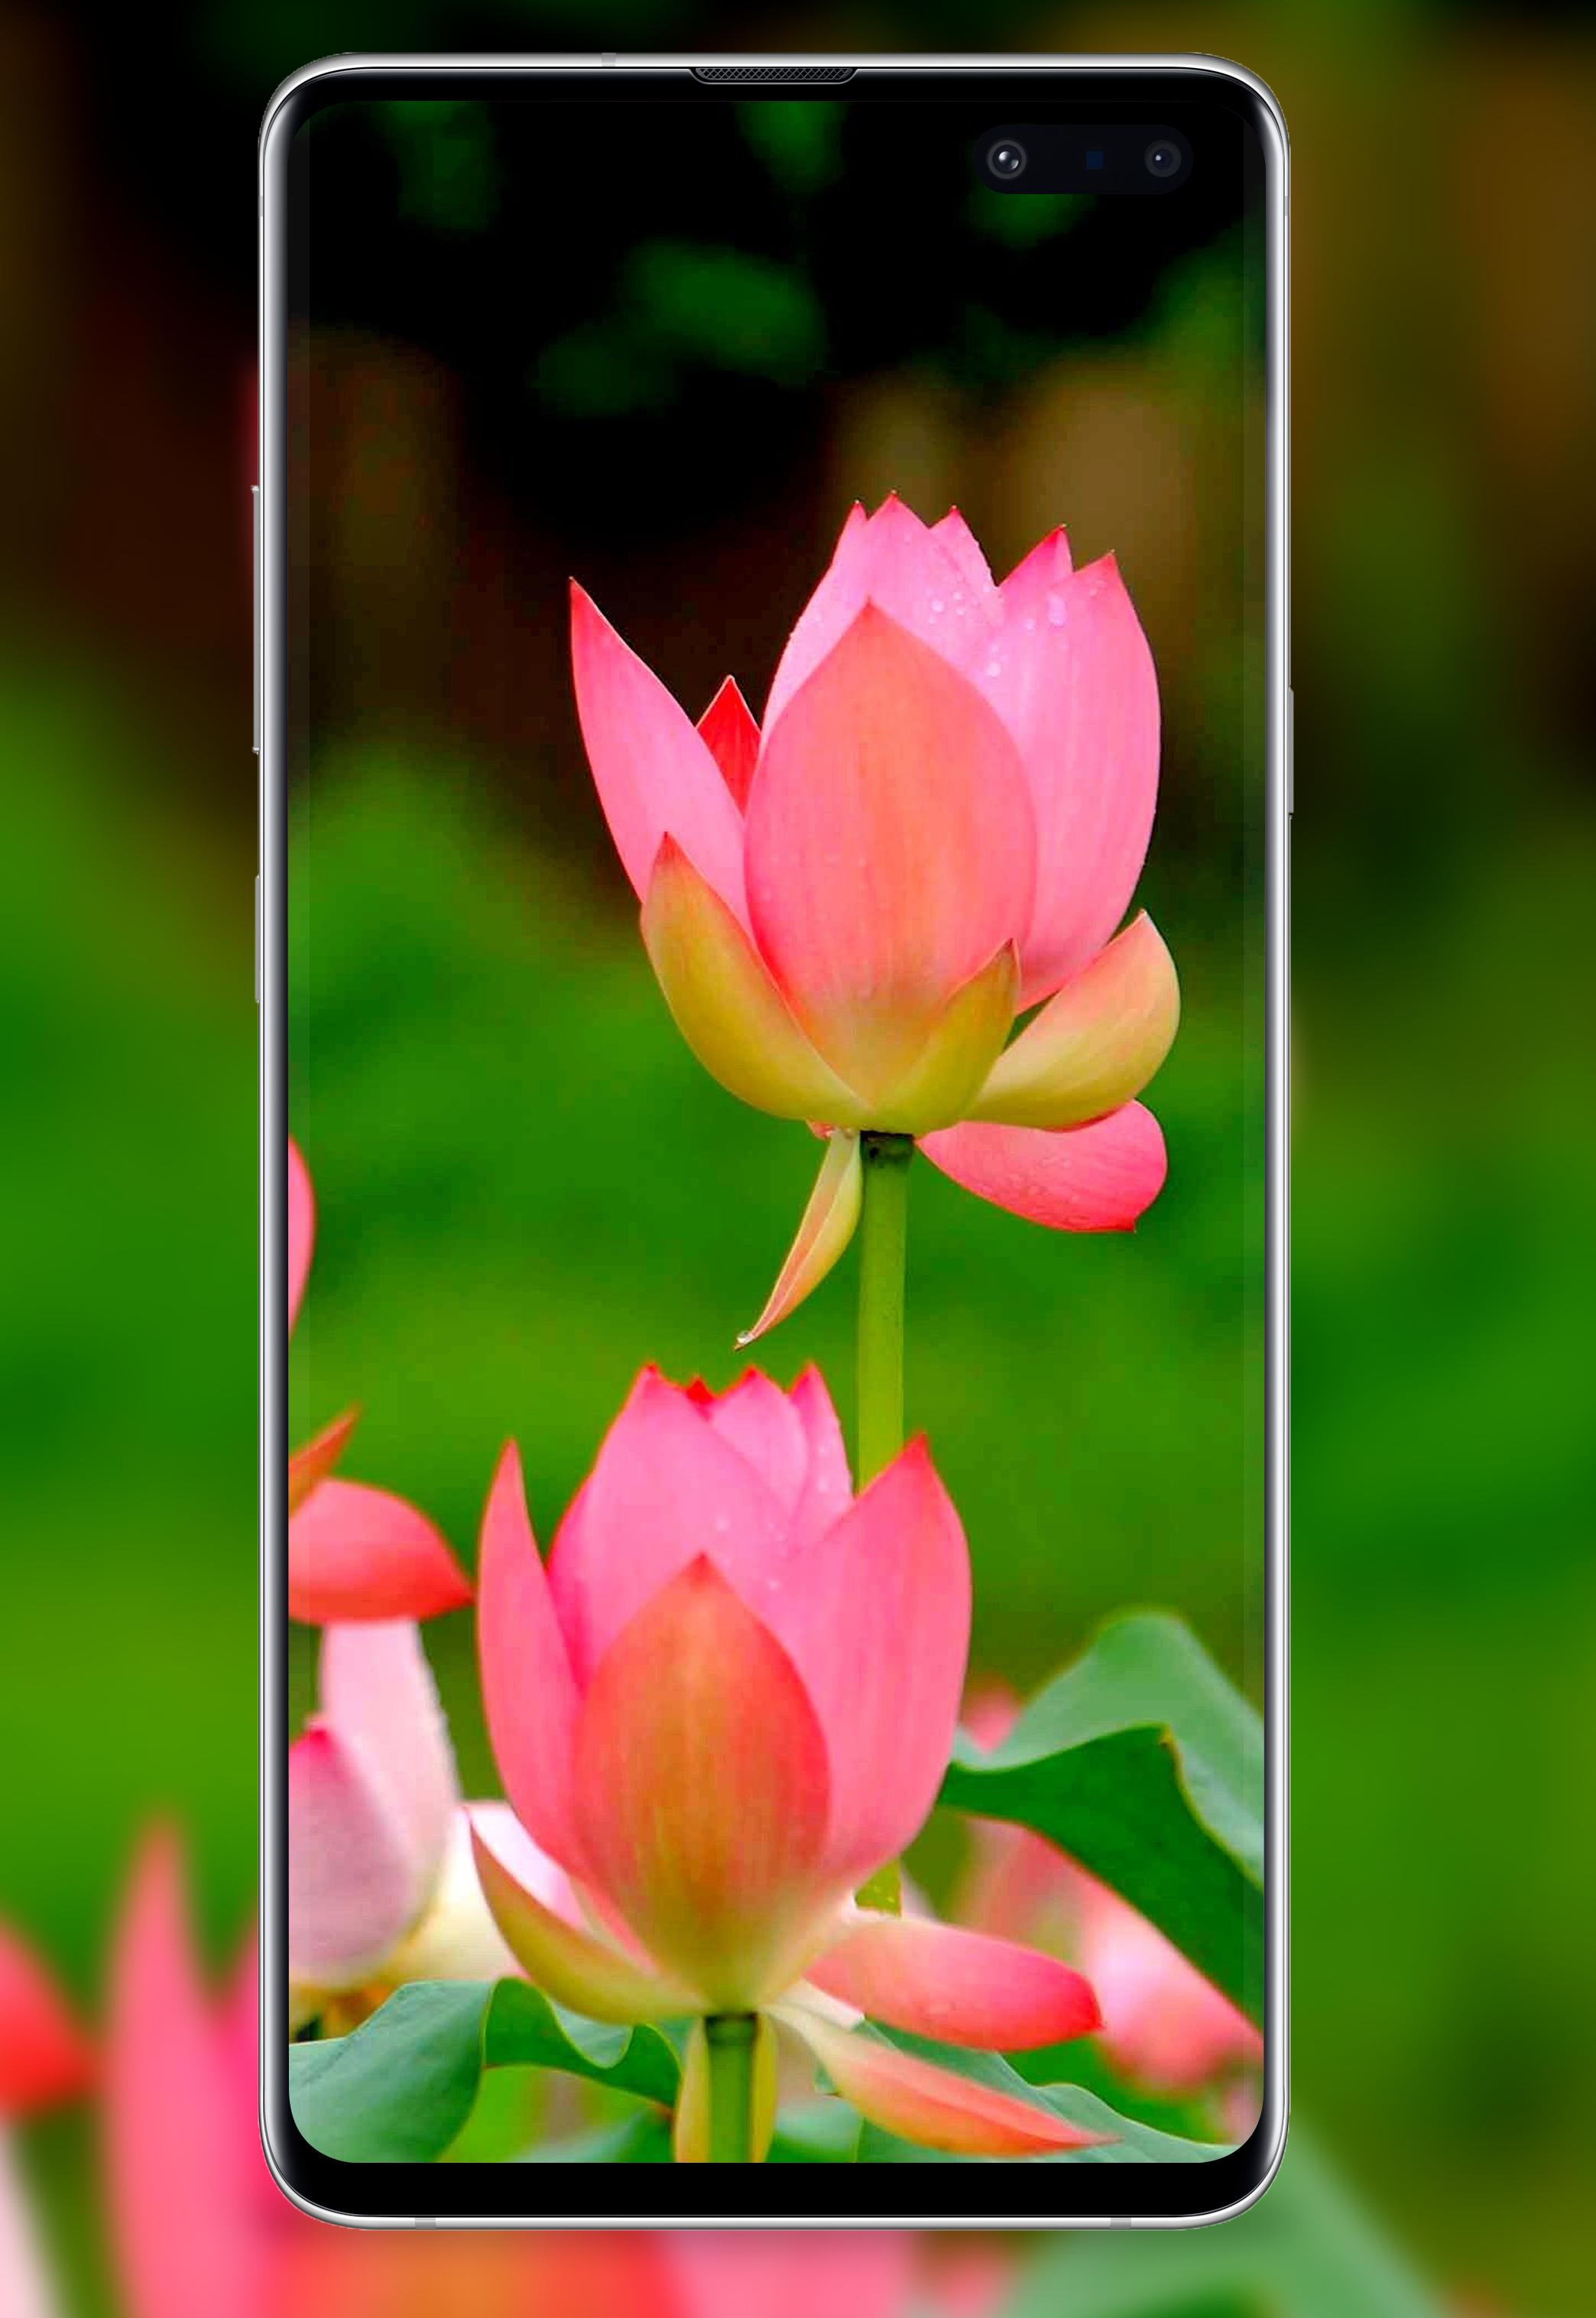 4k Flower Wallpapers Rose Hd Wallpaper Wallz For Android Apk Download